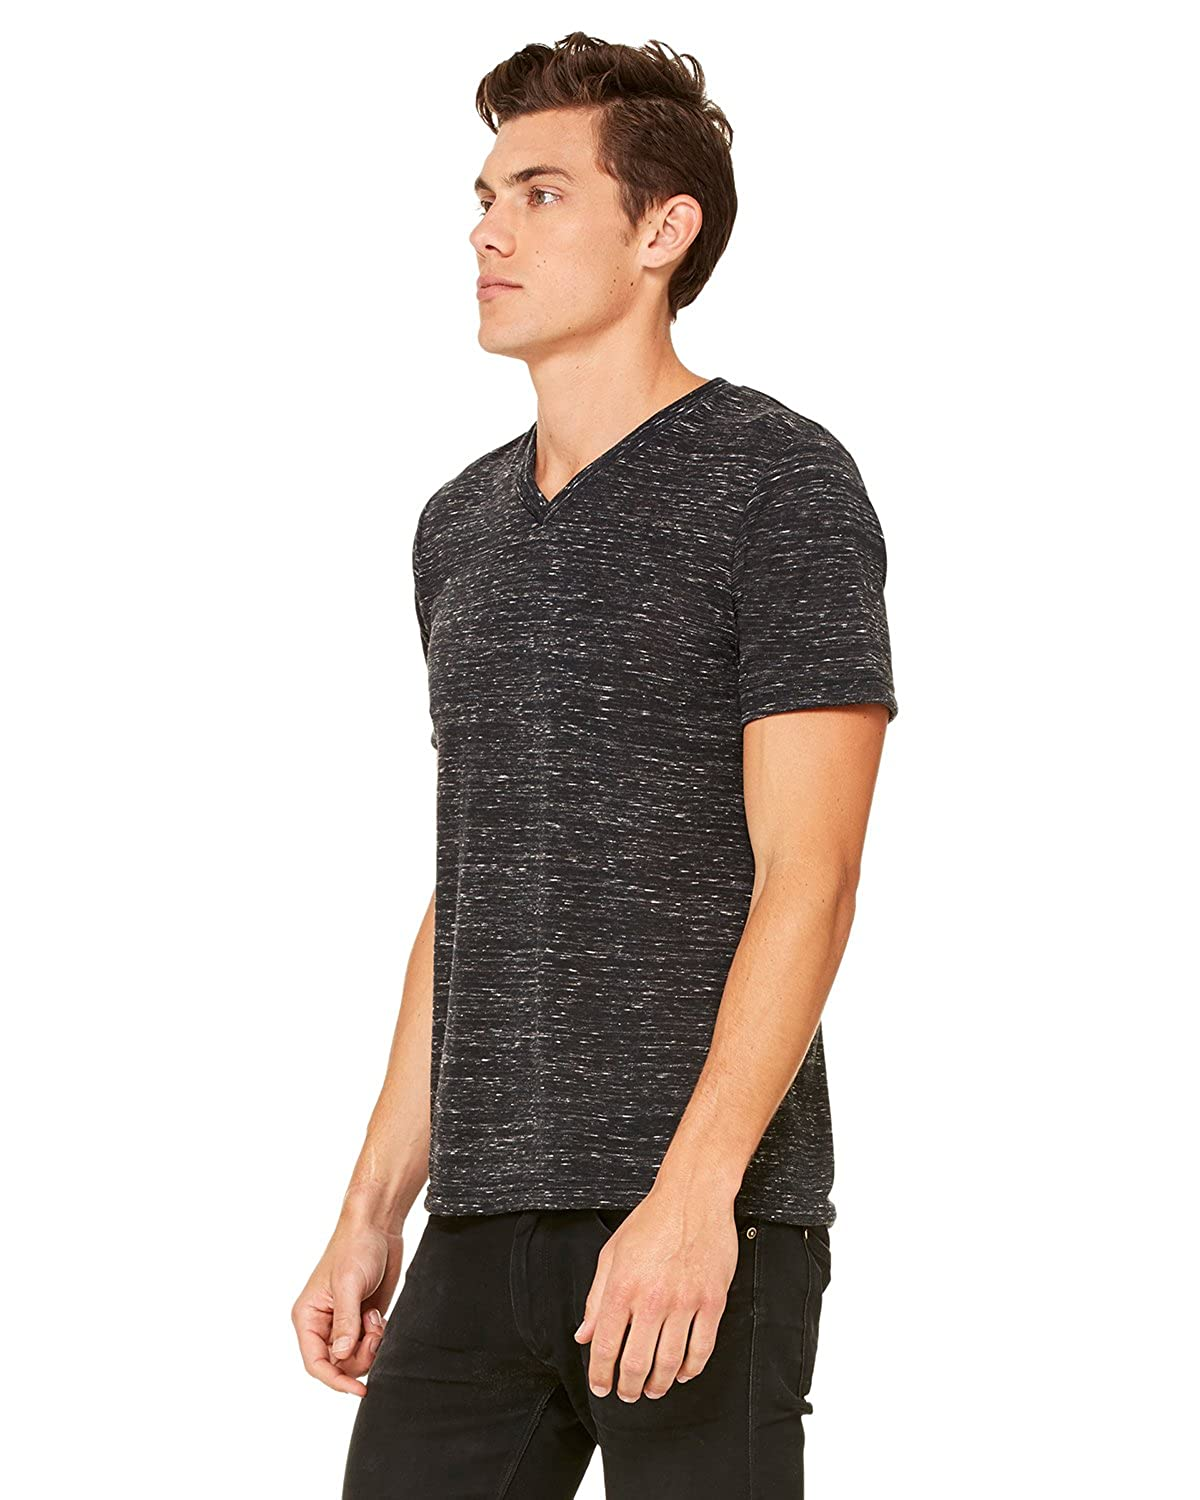 Bella Canvas Comfortable V-Neck Soft Fitted Jersey T-Shirt